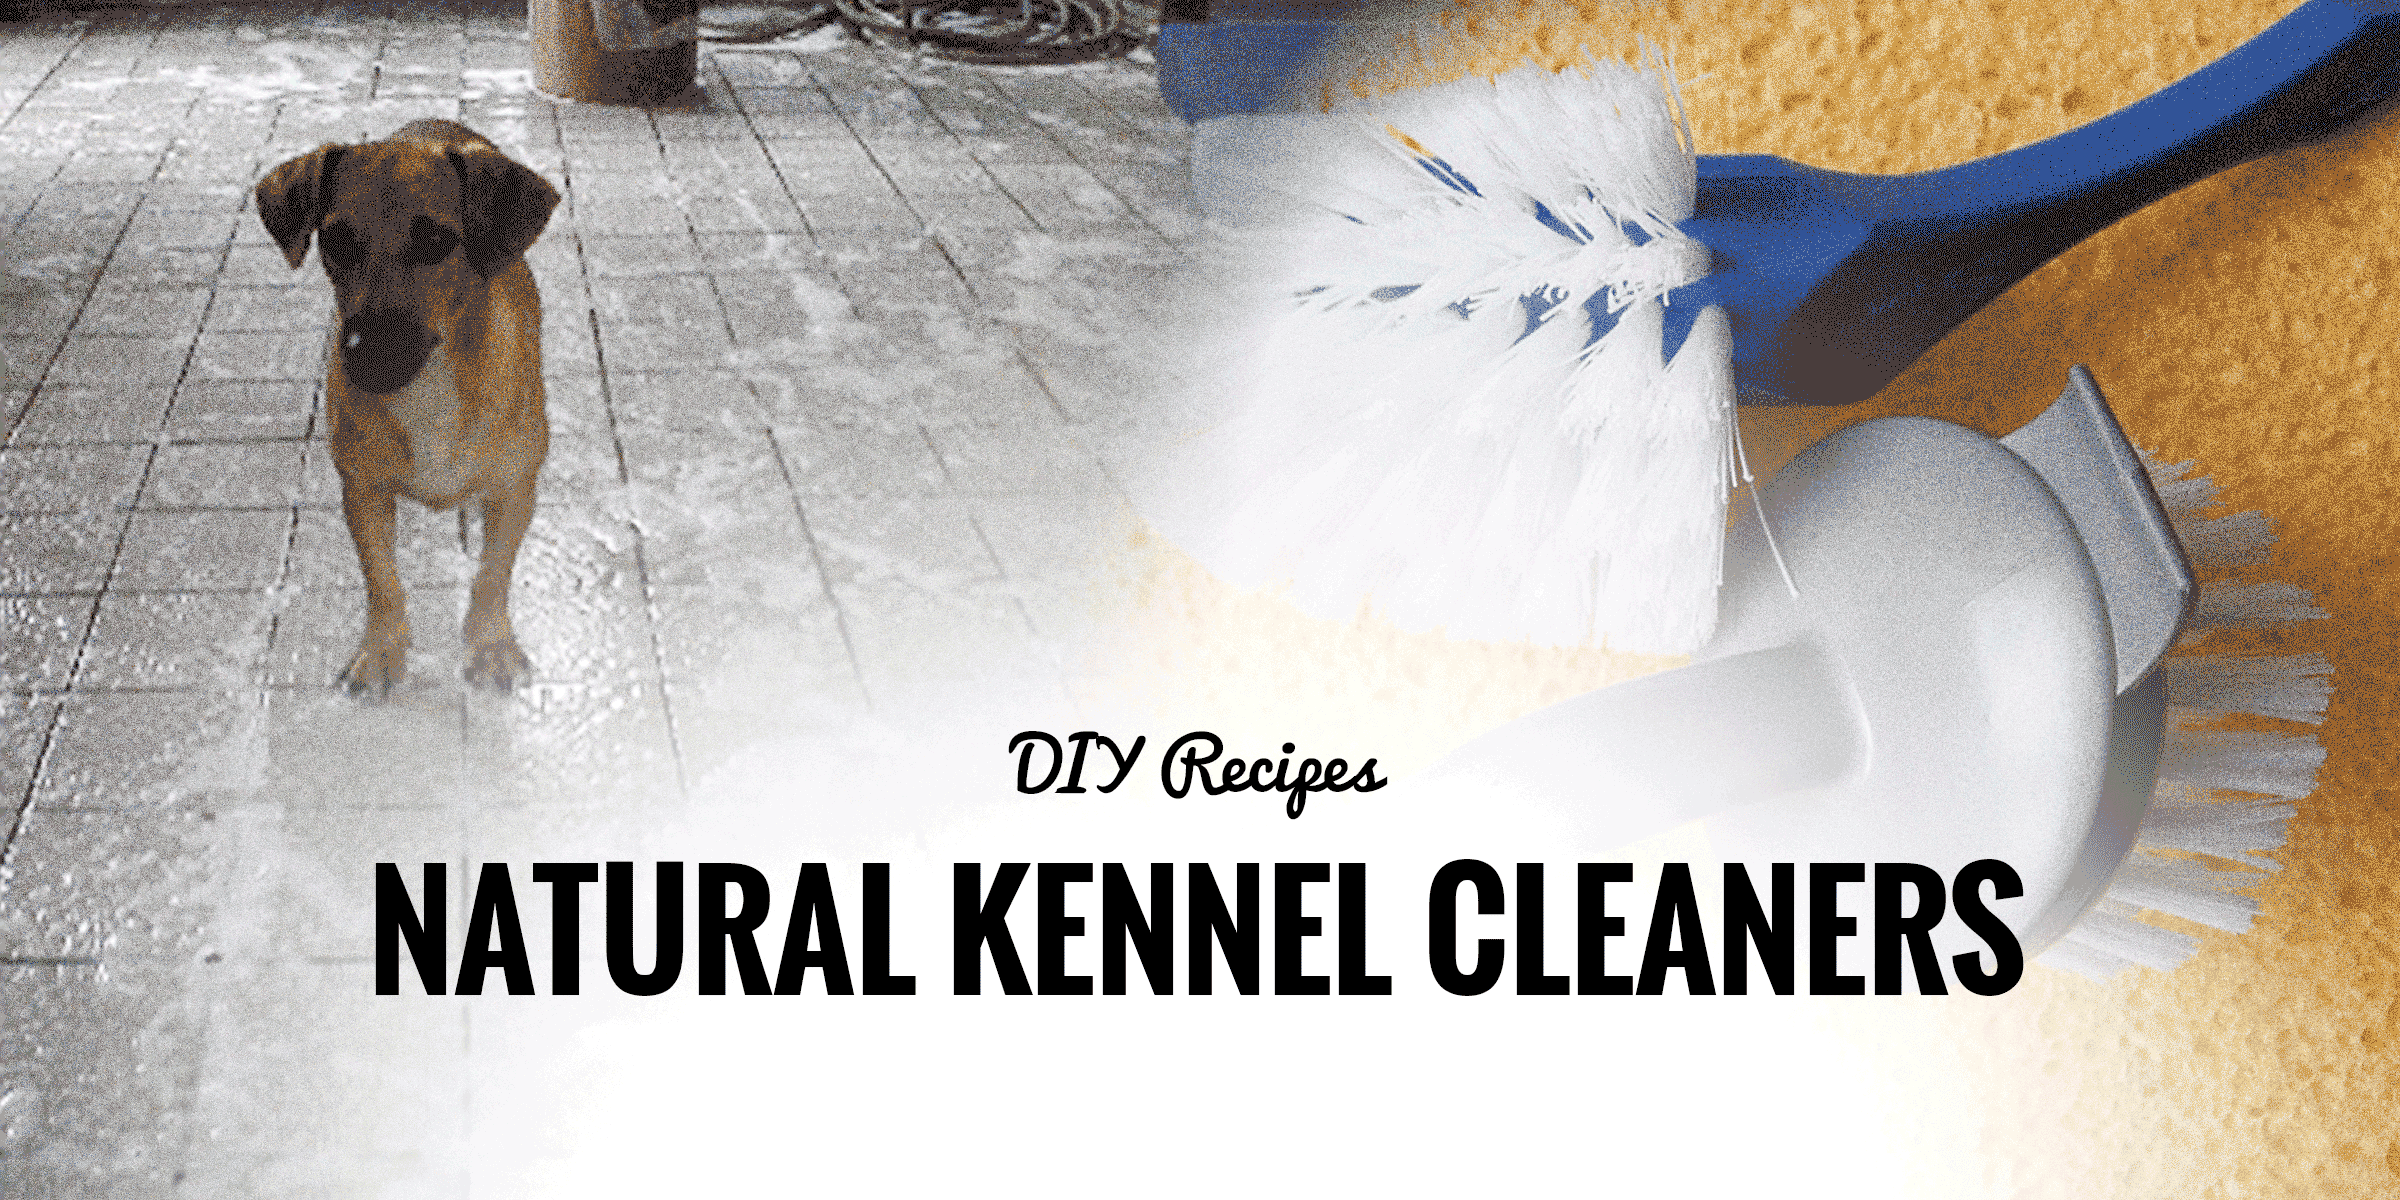 Cleaning Dog Kennel With Bleach